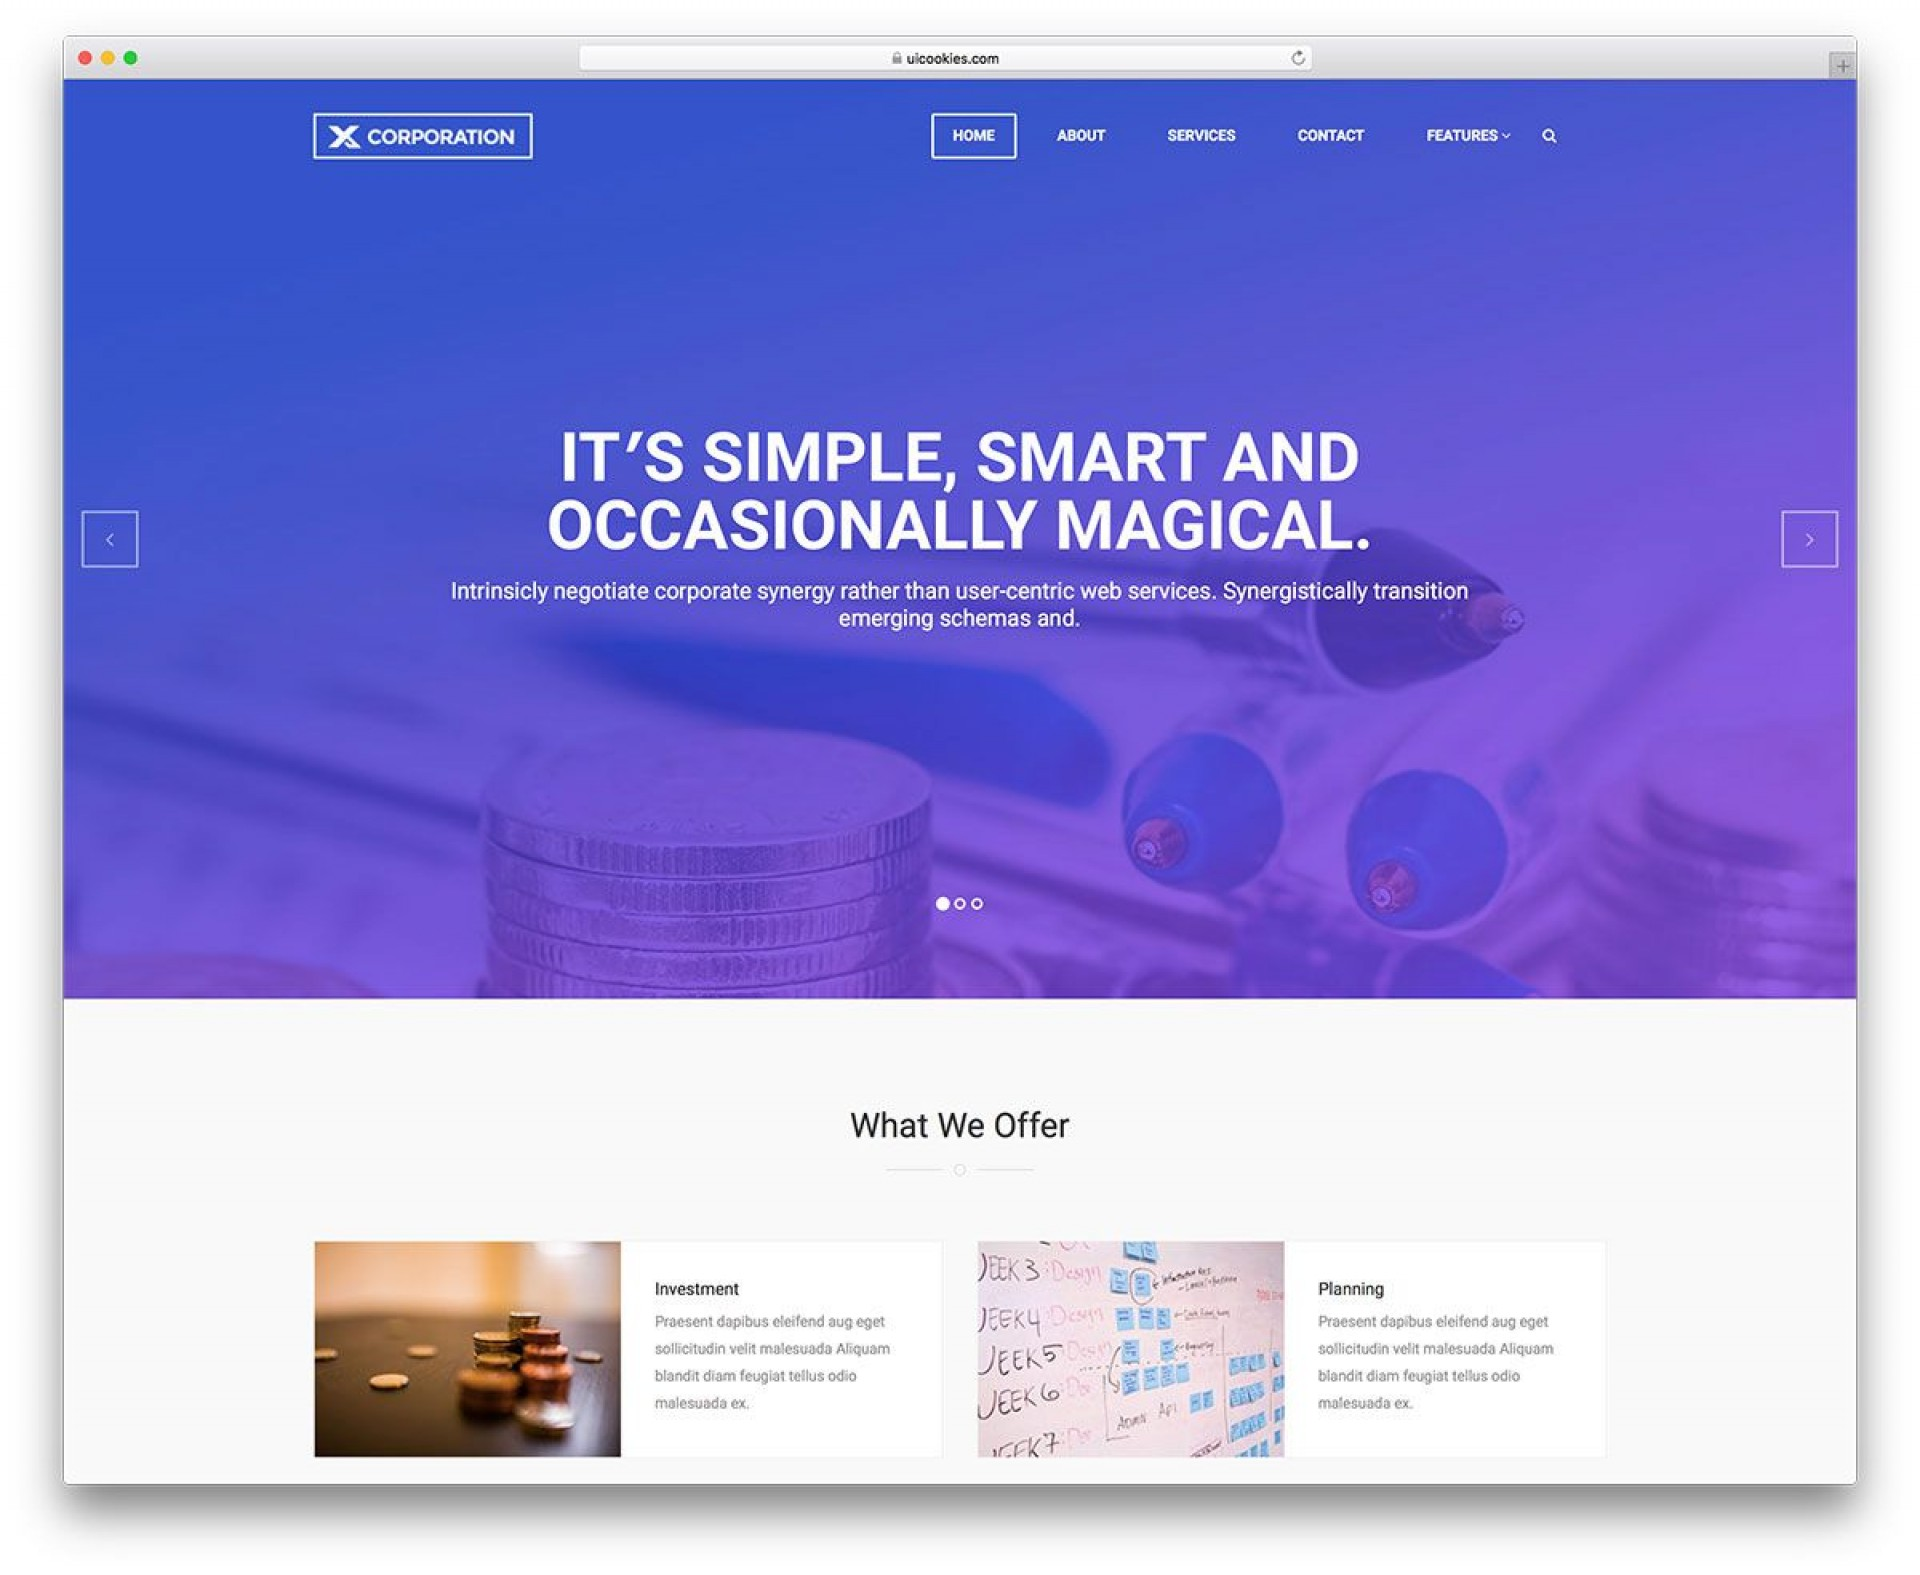 000 Unbelievable Simple Web Page Template Image  Free Download Html Code1920